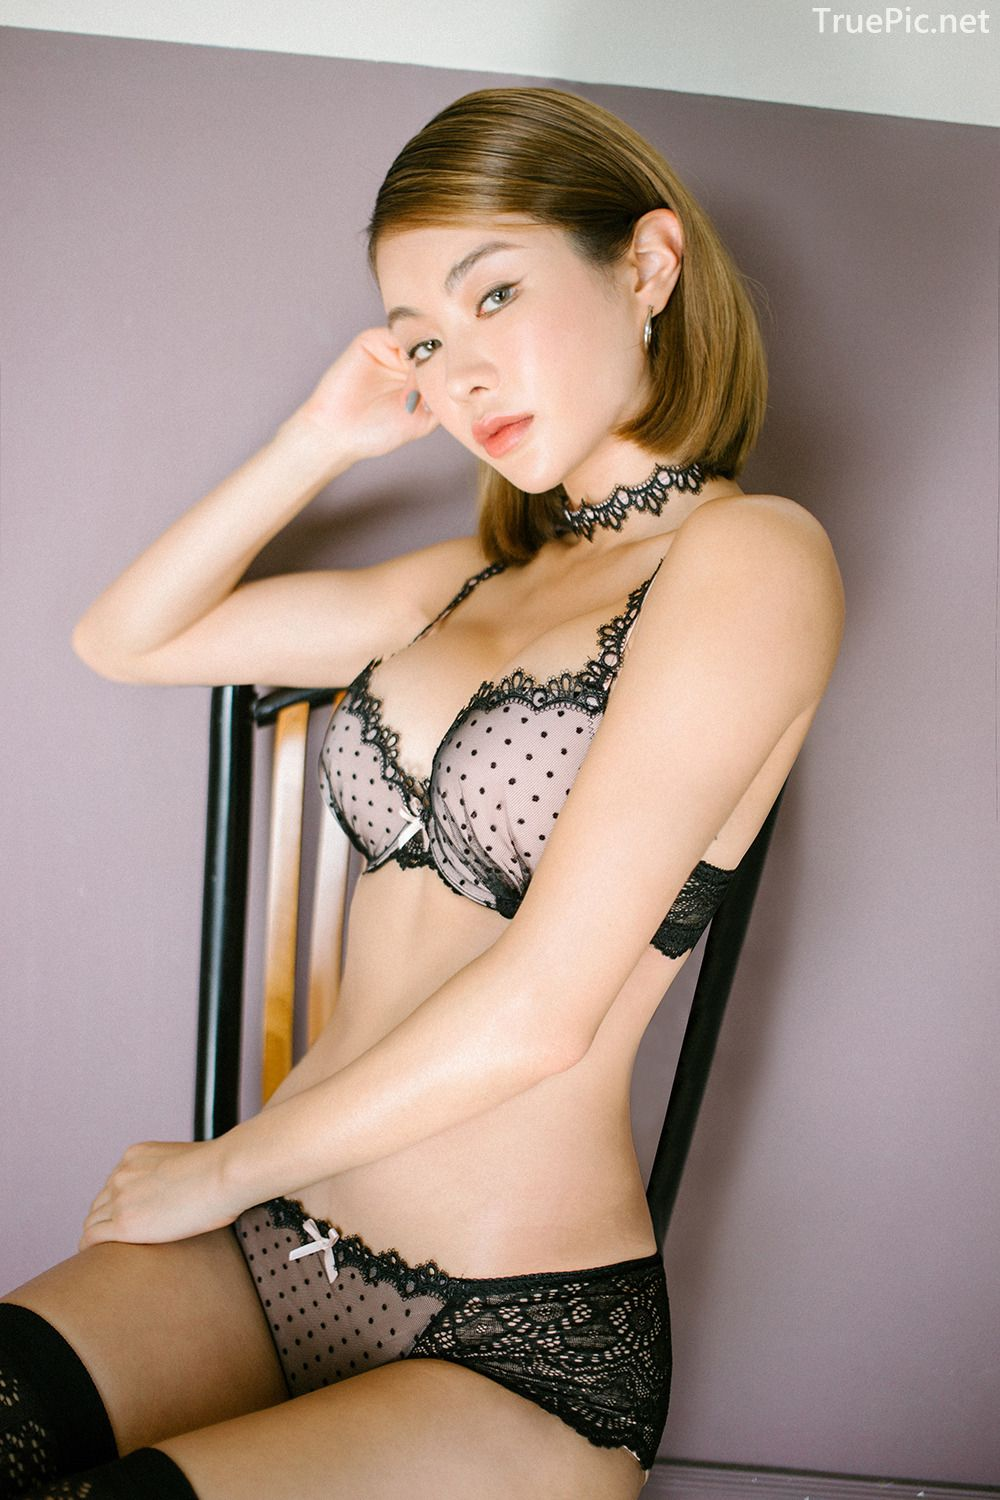 Lingerie queen An Seo Rin - Choker Lingerie Set - Korean model fashion - Picture 9